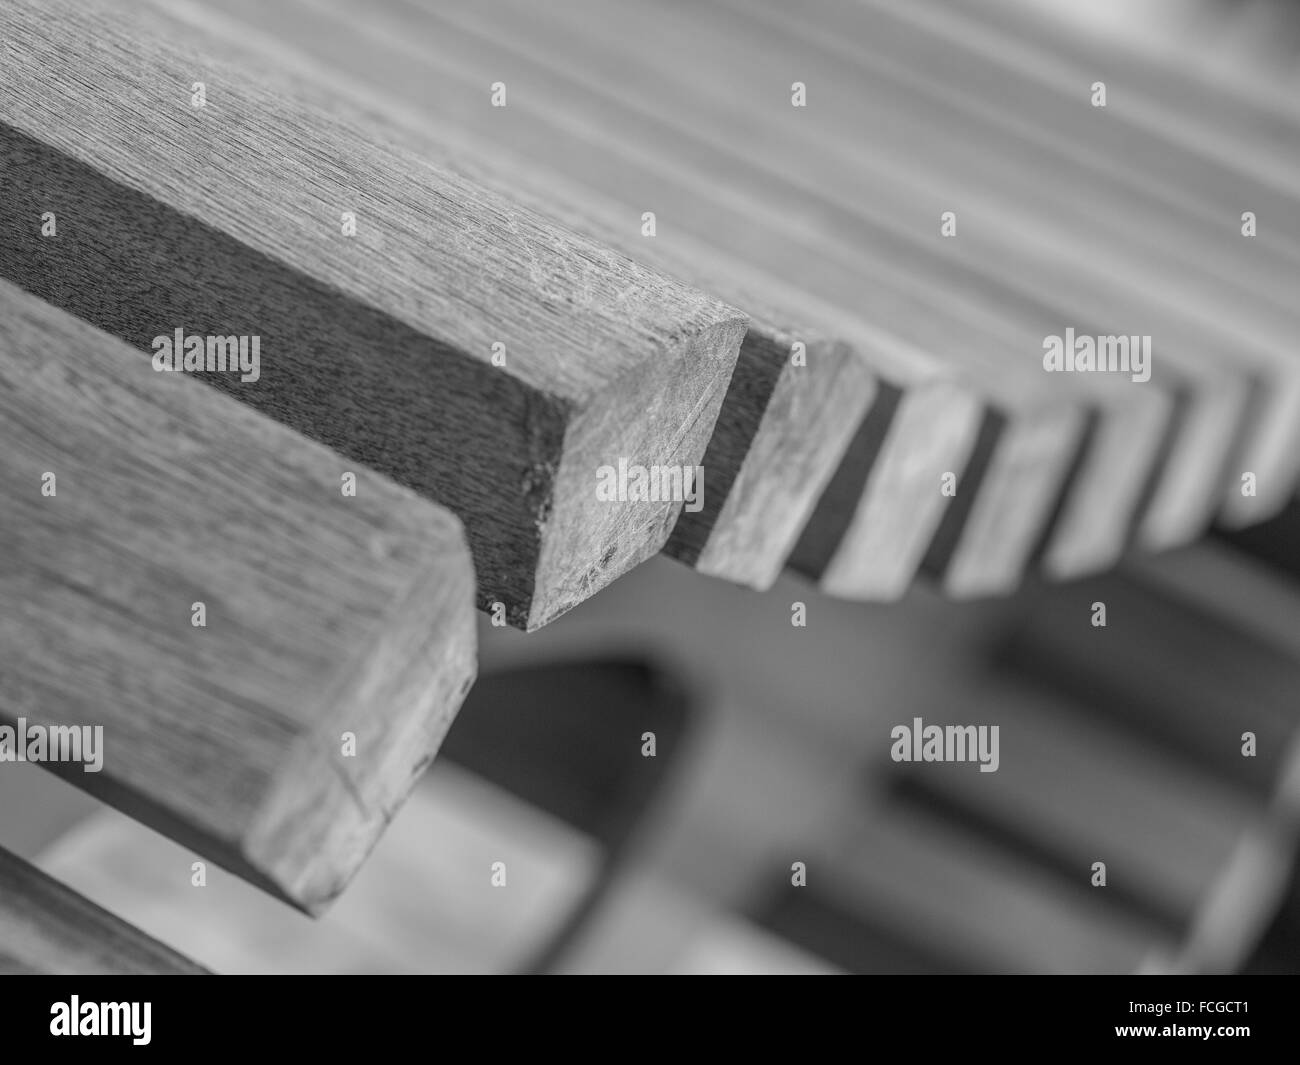 Close up of curved wooden bench in black and white. - Stock Image